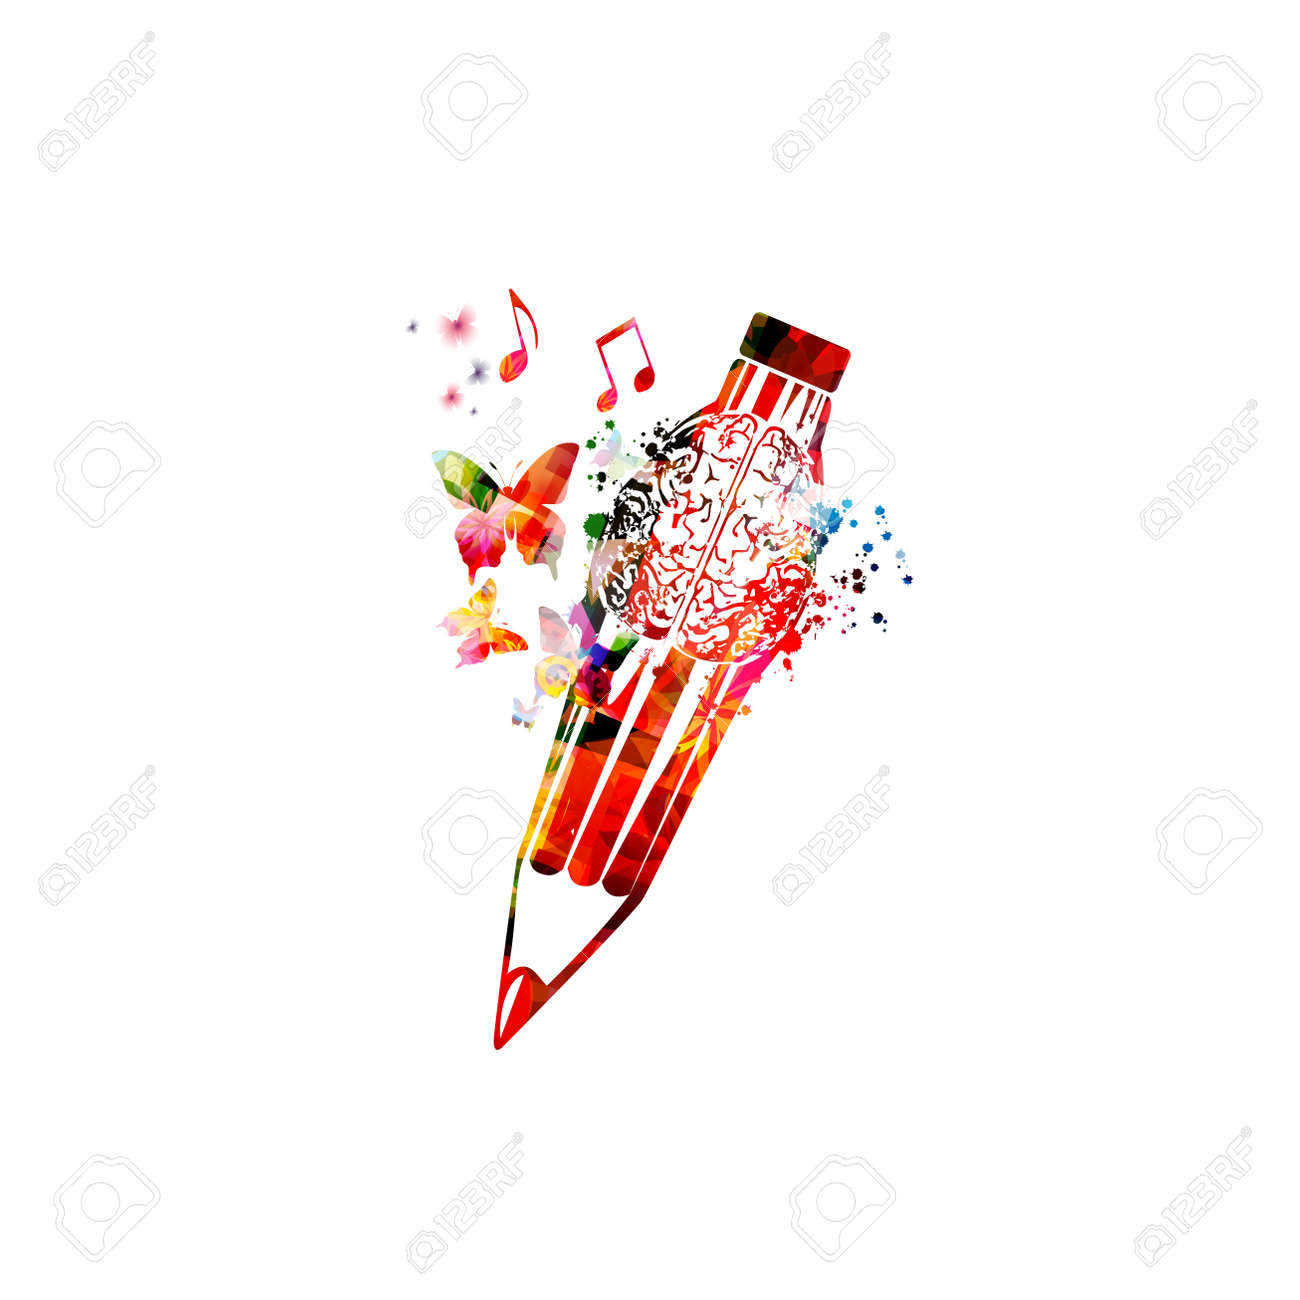 Colorful pencil with brain symbol for creative writing, idea, inspiration, education and learning concept. - 169503074